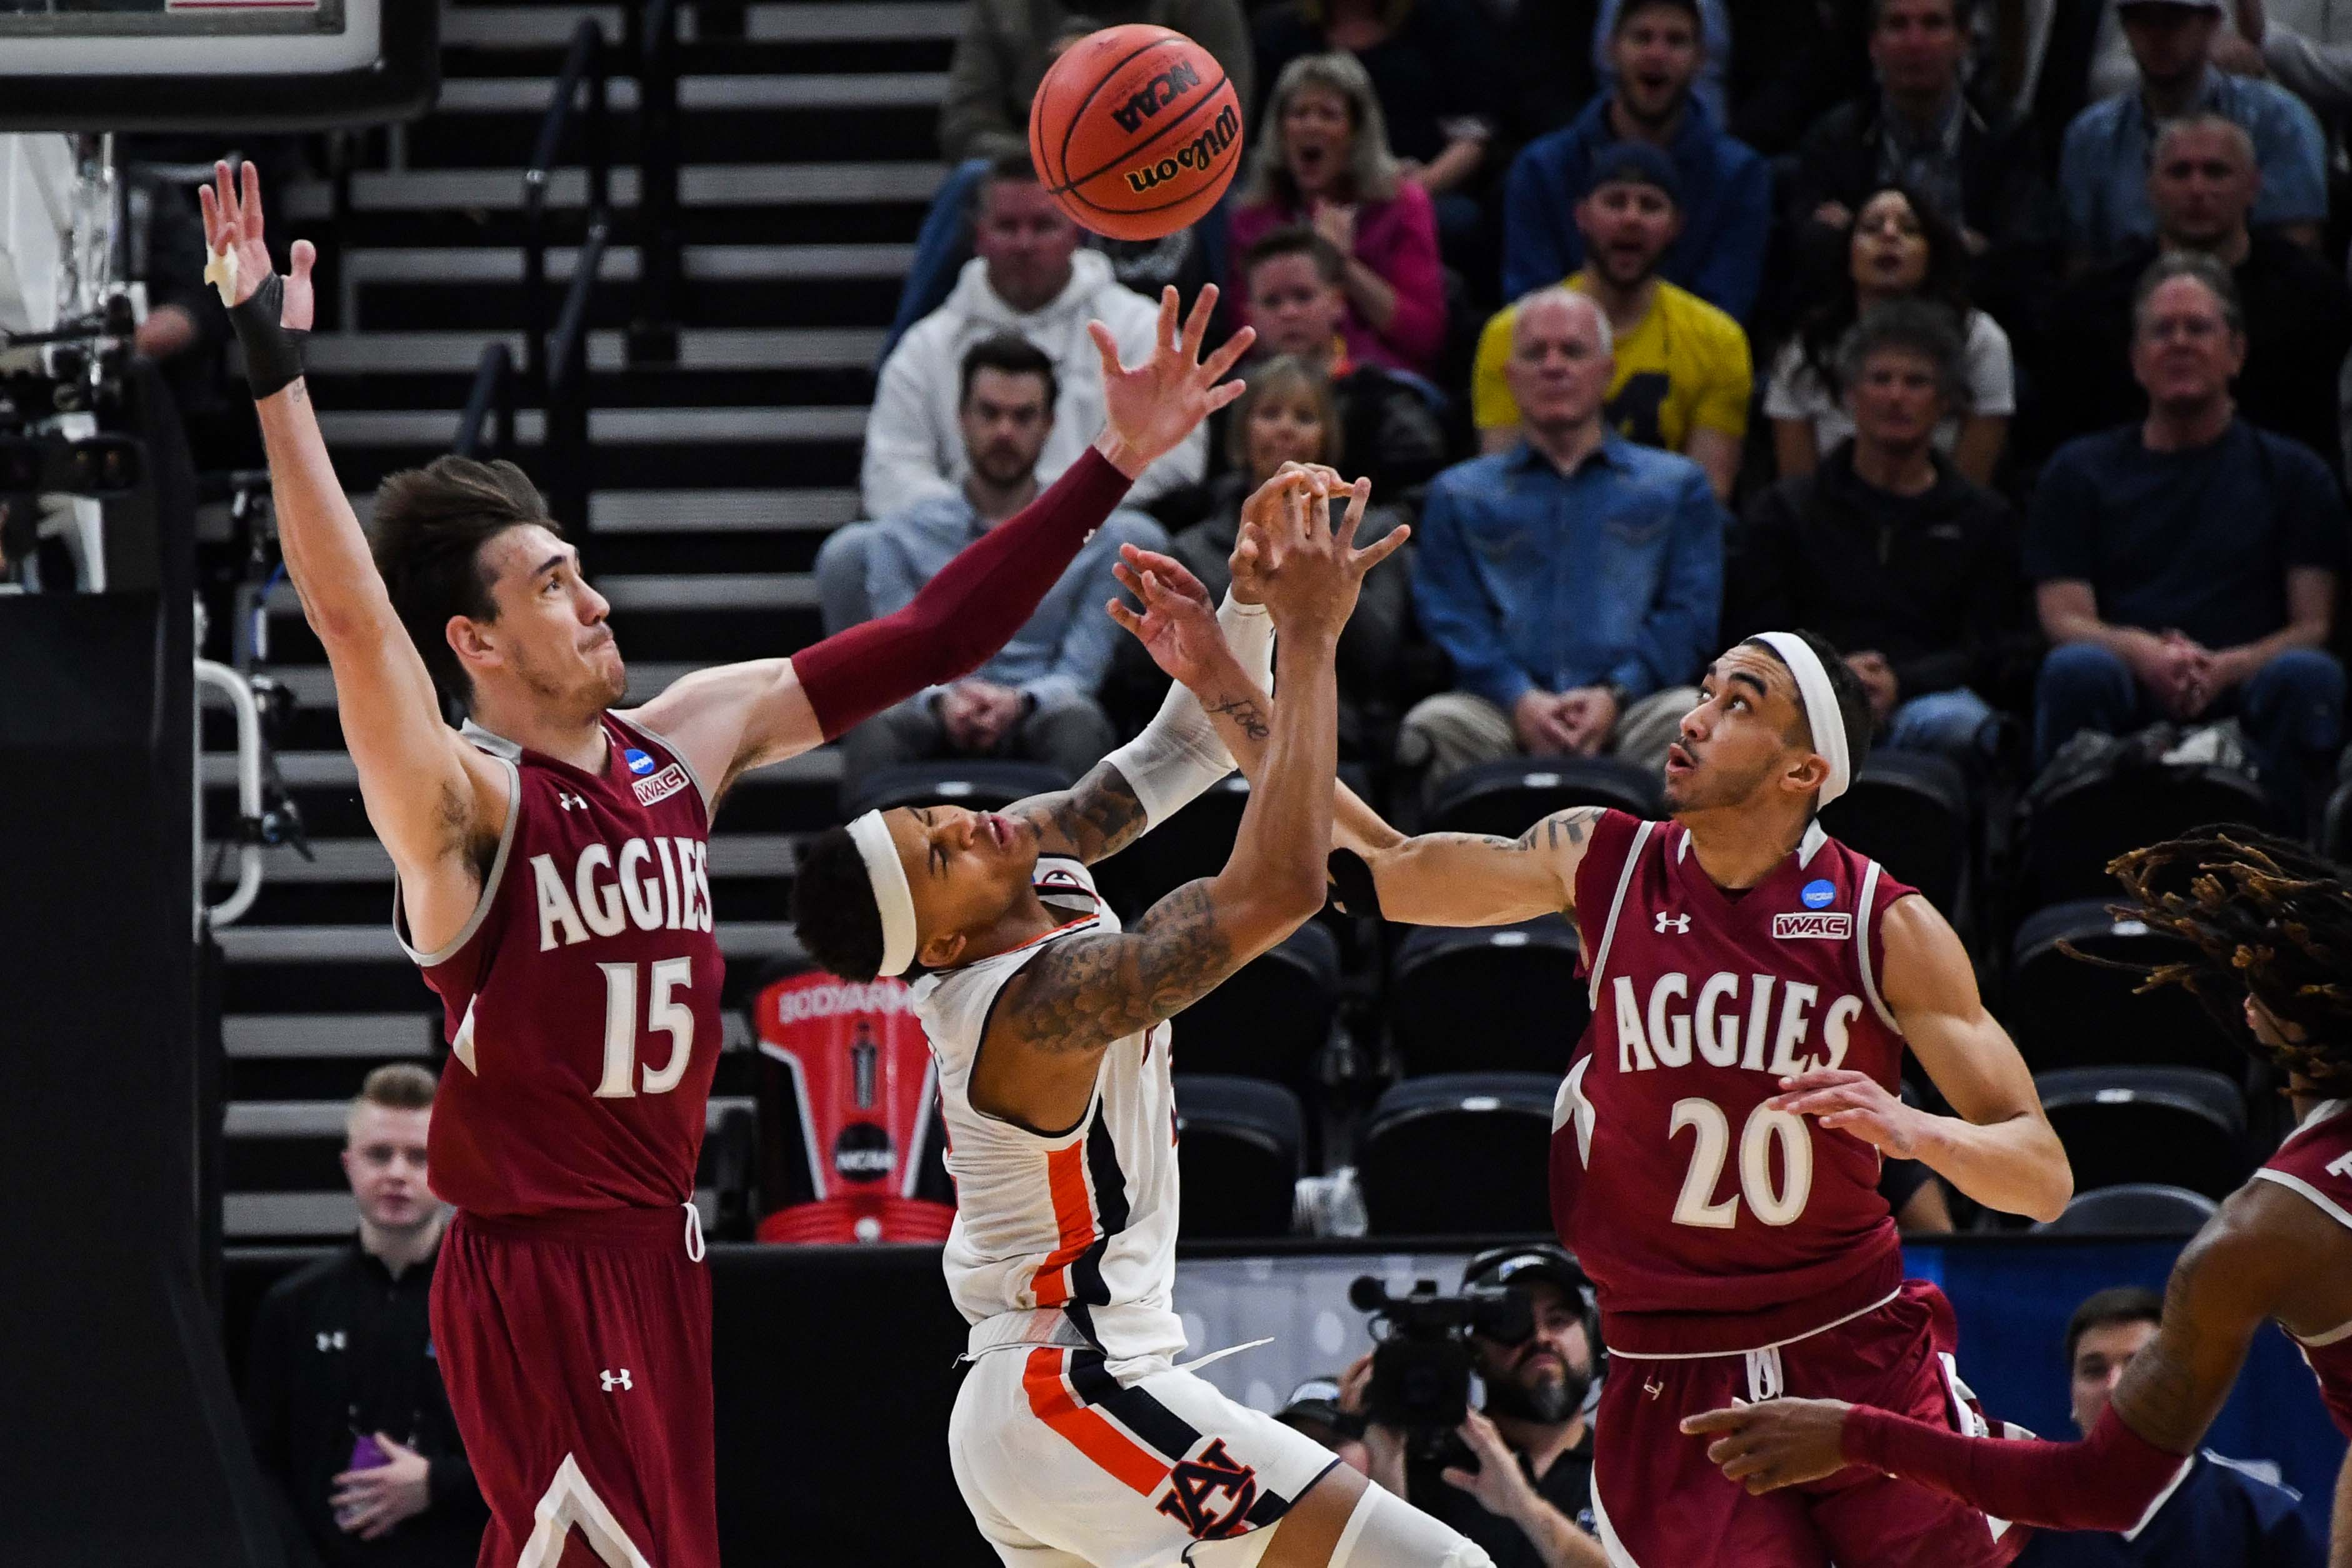 Auburn survives New Mexico State and more NCAA tournament action in March Madness Day 1